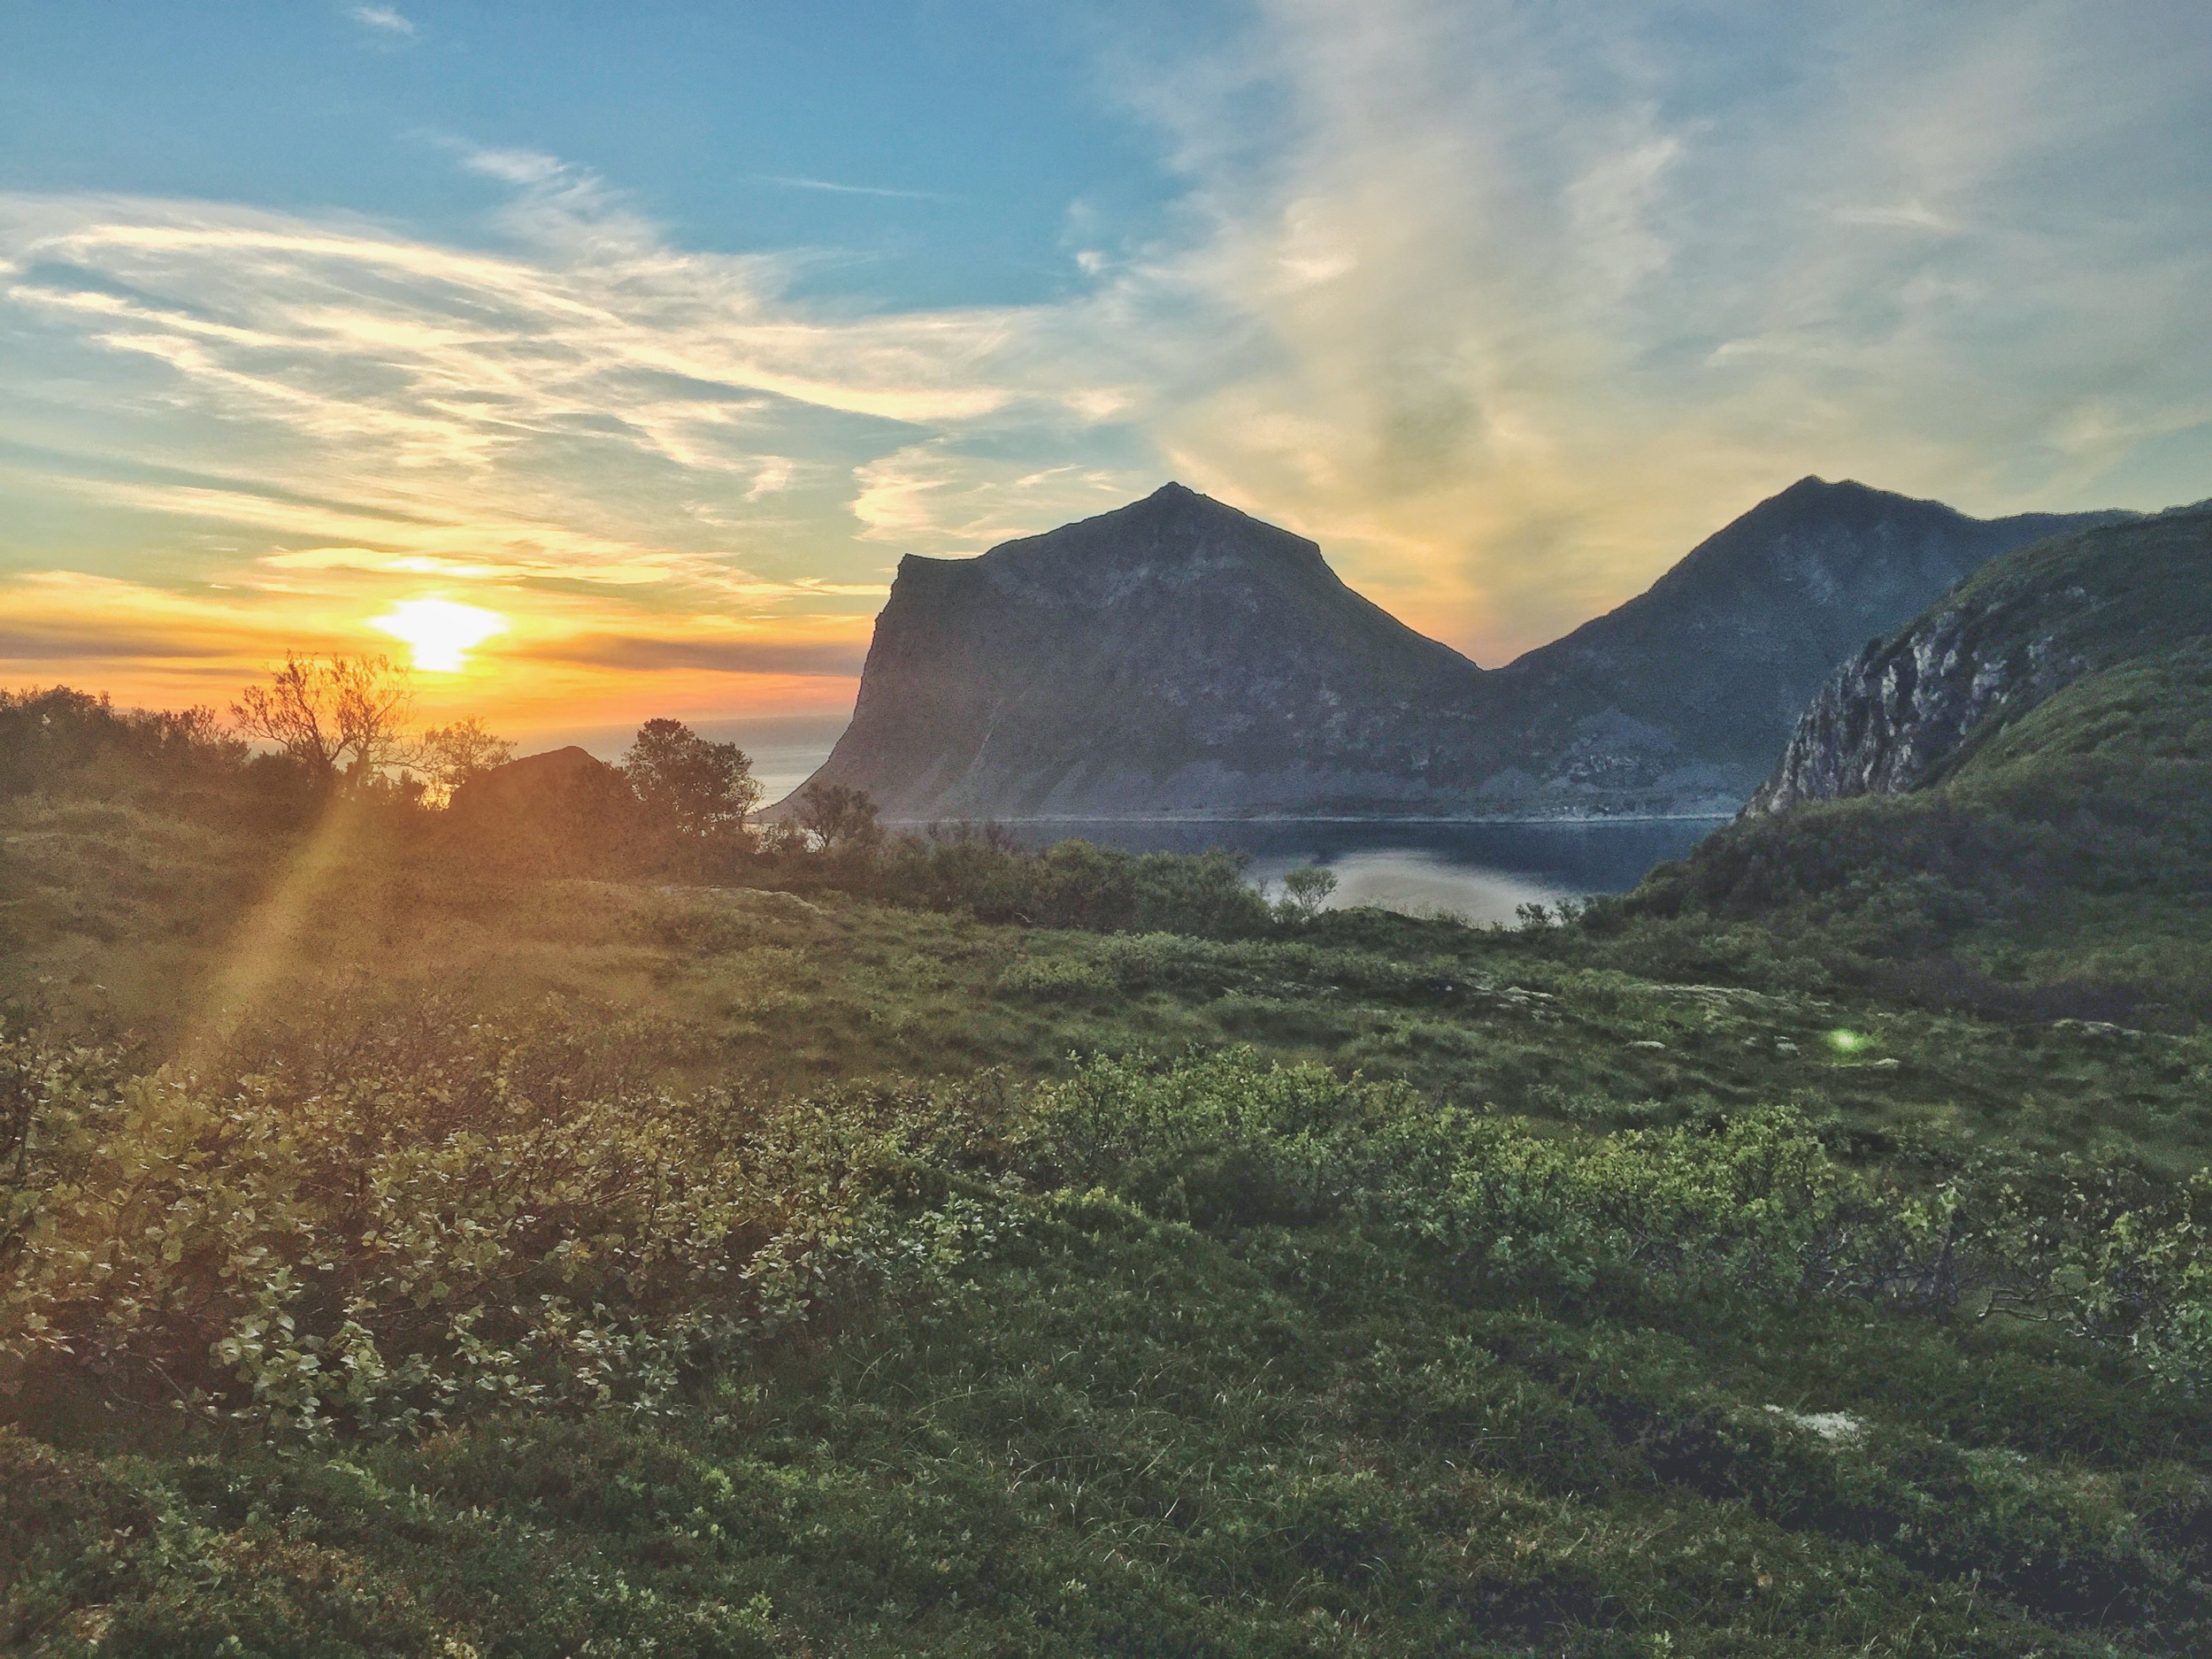 Watching the sunset at Holandsmelen in the Lofoten Islands, Norway.